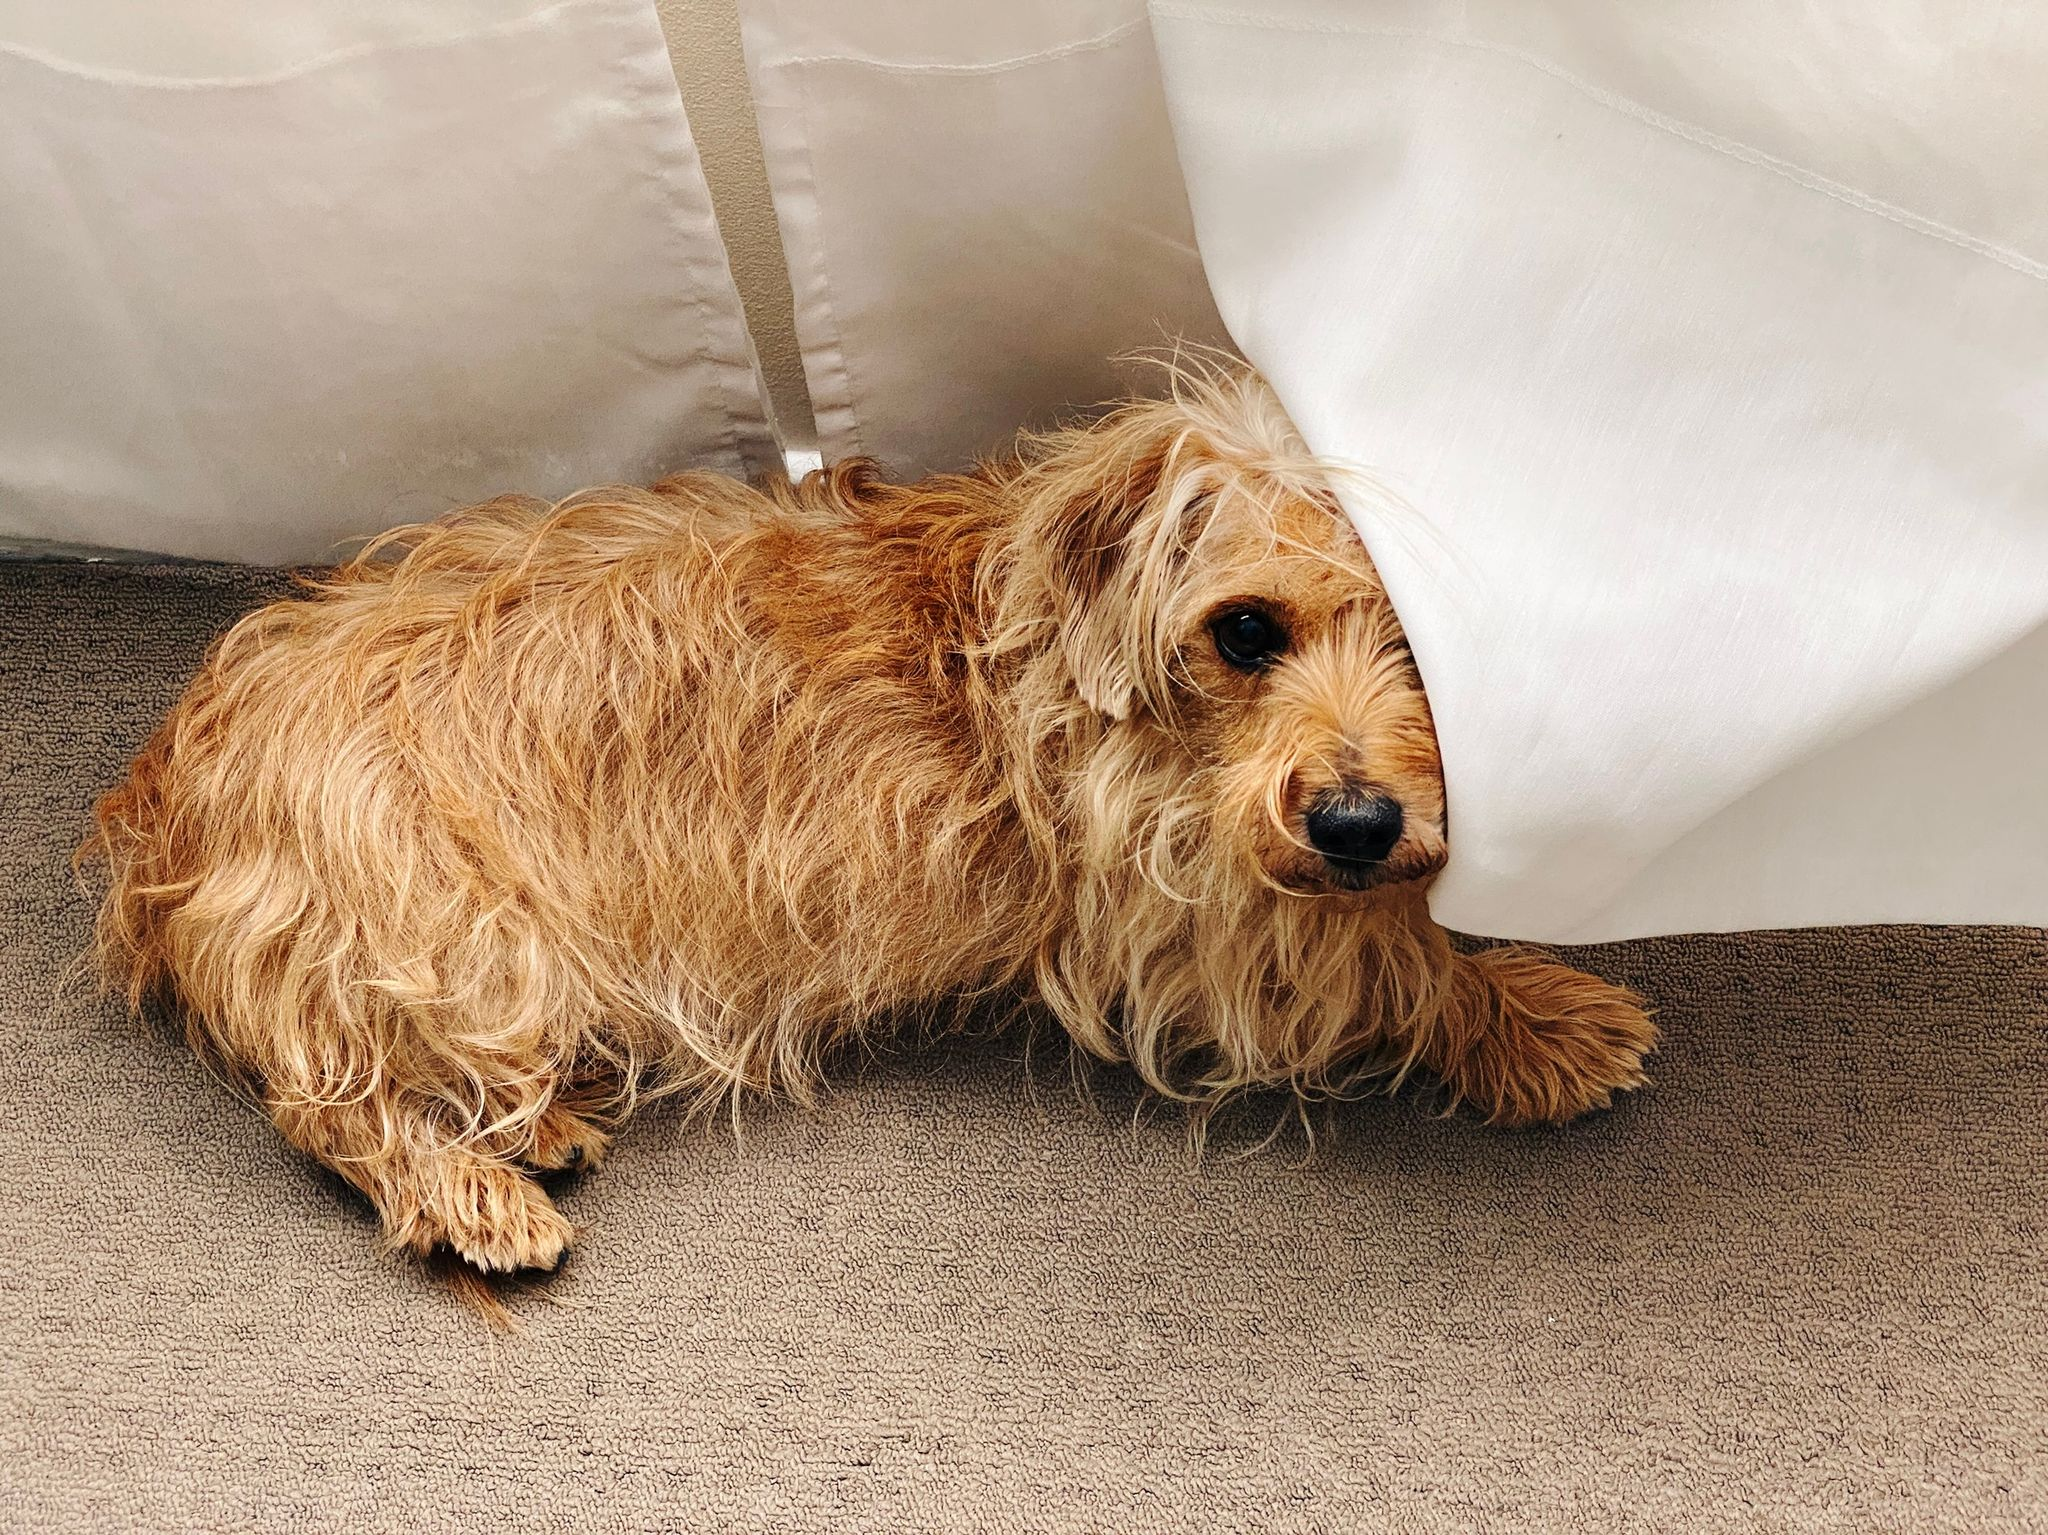 A photo of a small scruffy blonde dog lying down underneath a white curtain. The curtain is folded up over half of his face so he looks like the Phantom of the Opera.